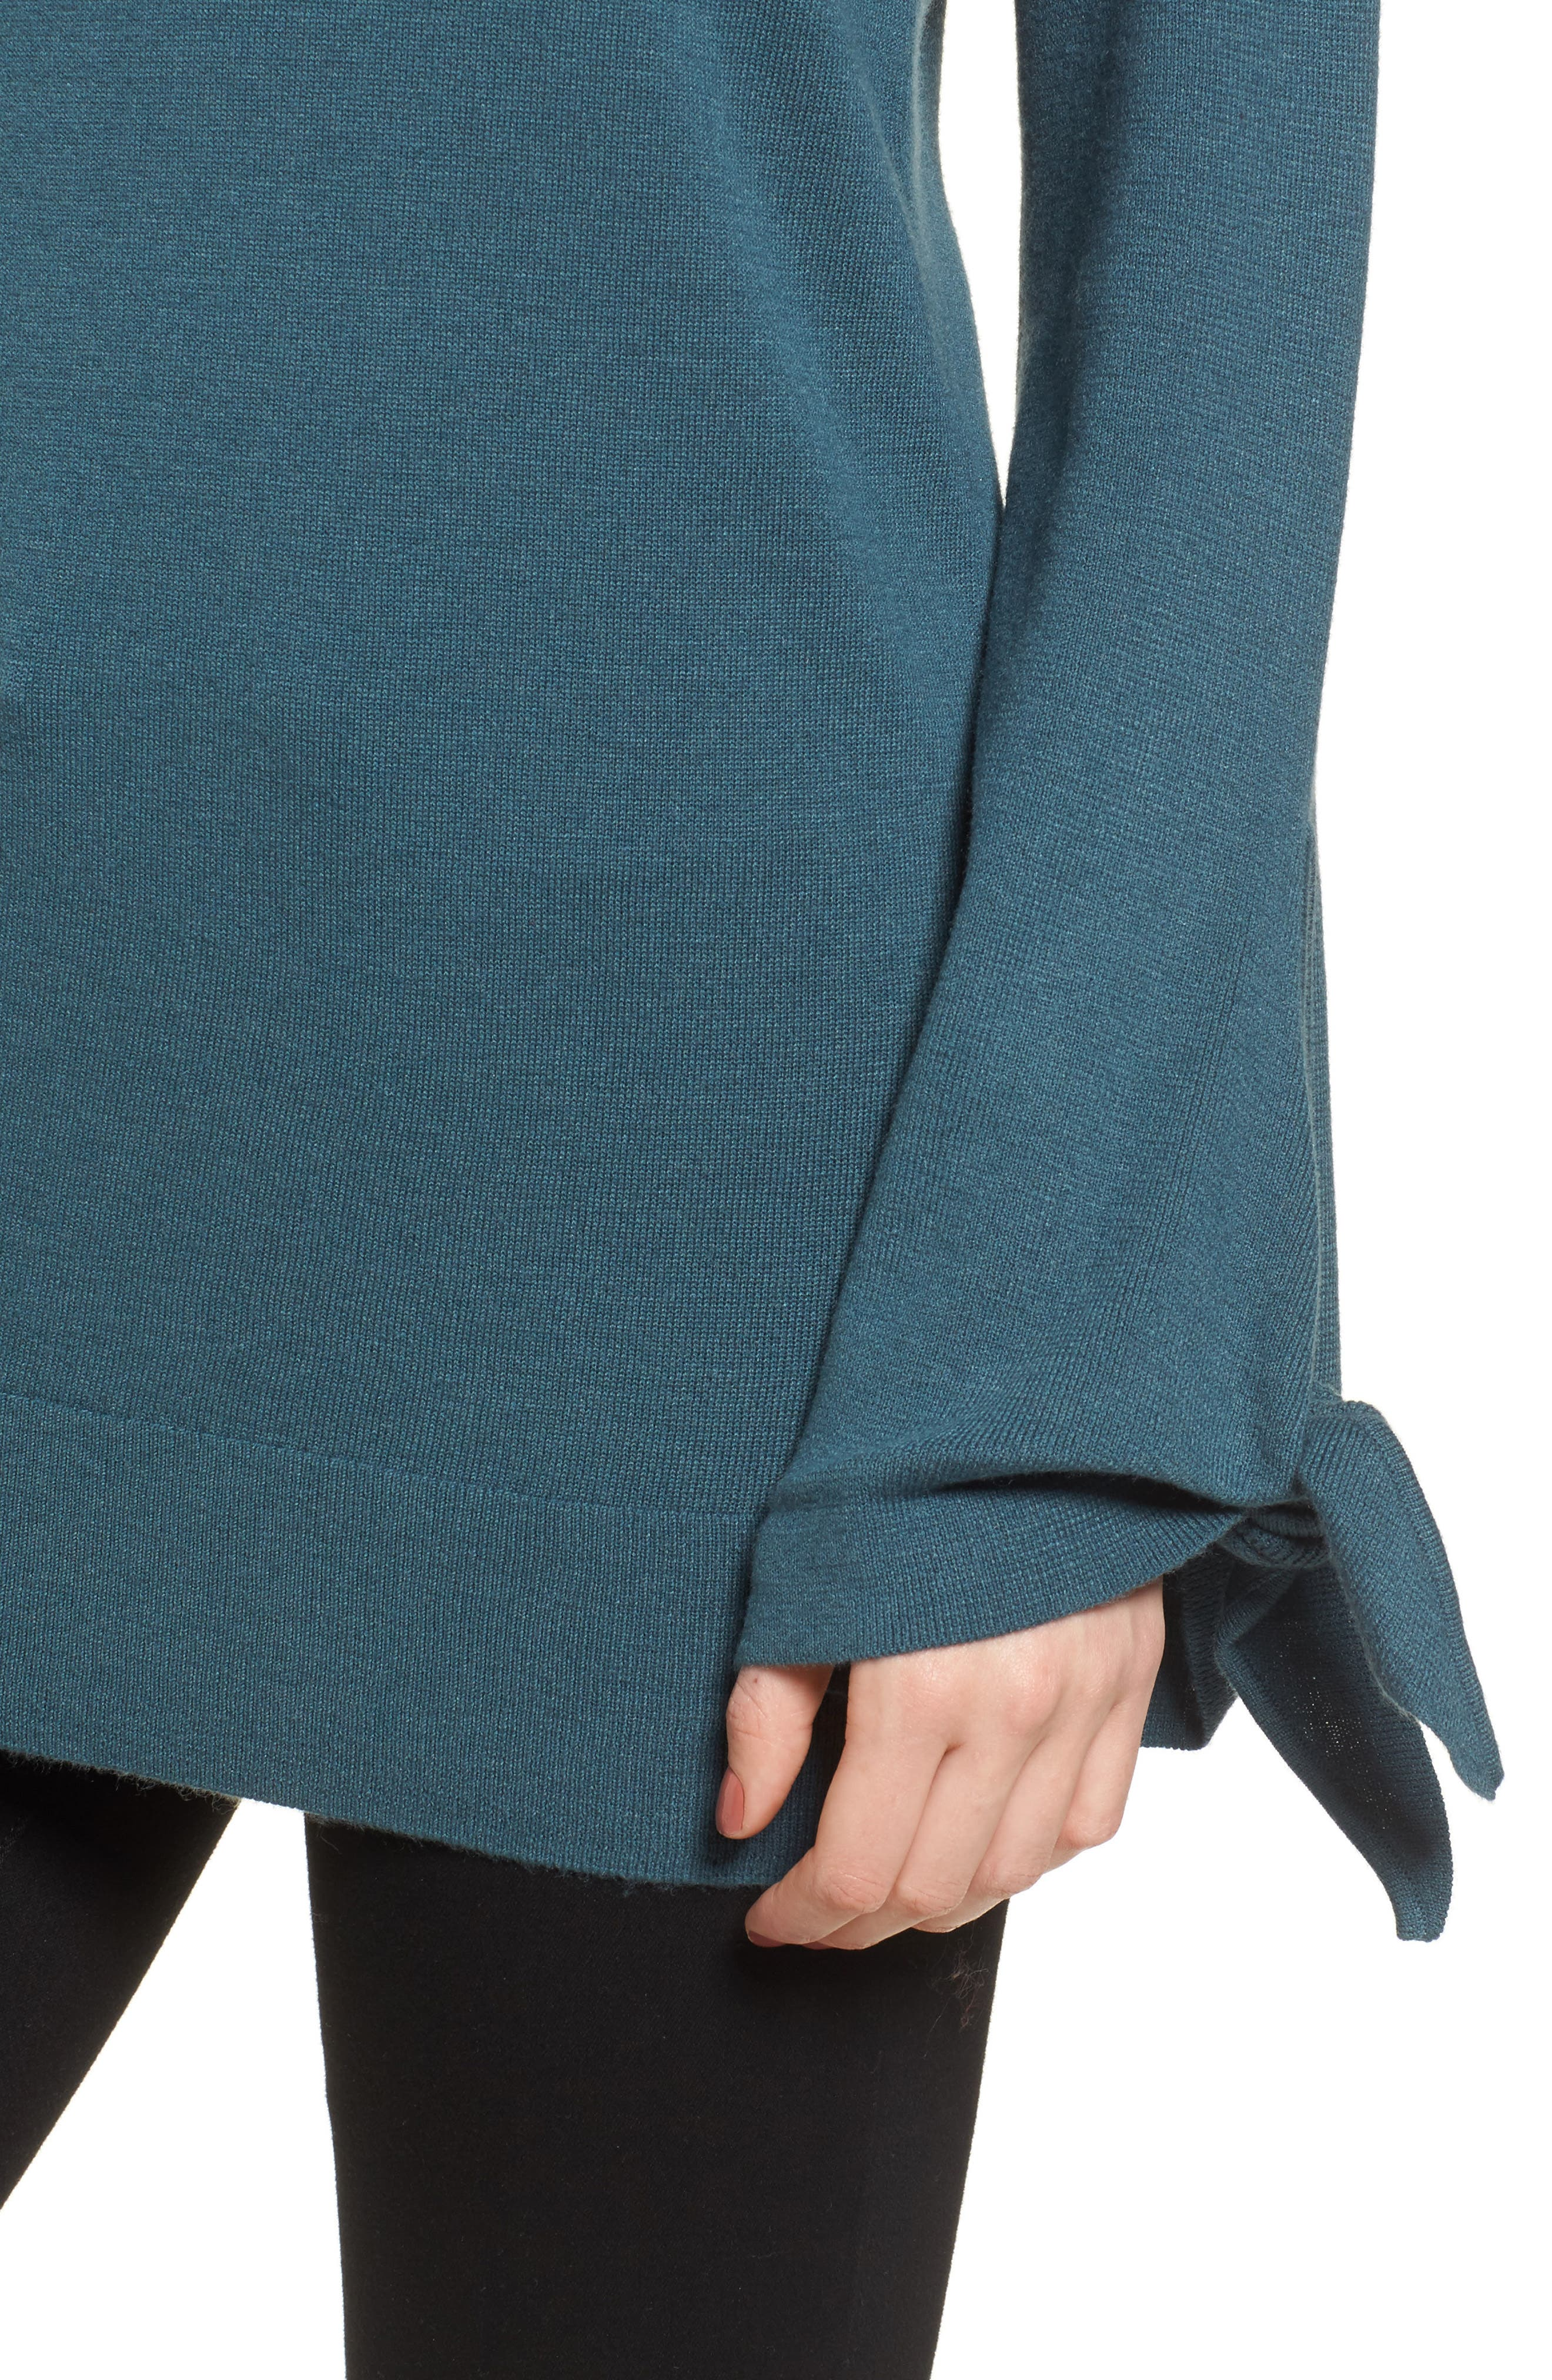 Tie Sleeve Sweater,                             Alternate thumbnail 4, color,                             Teal Gazer